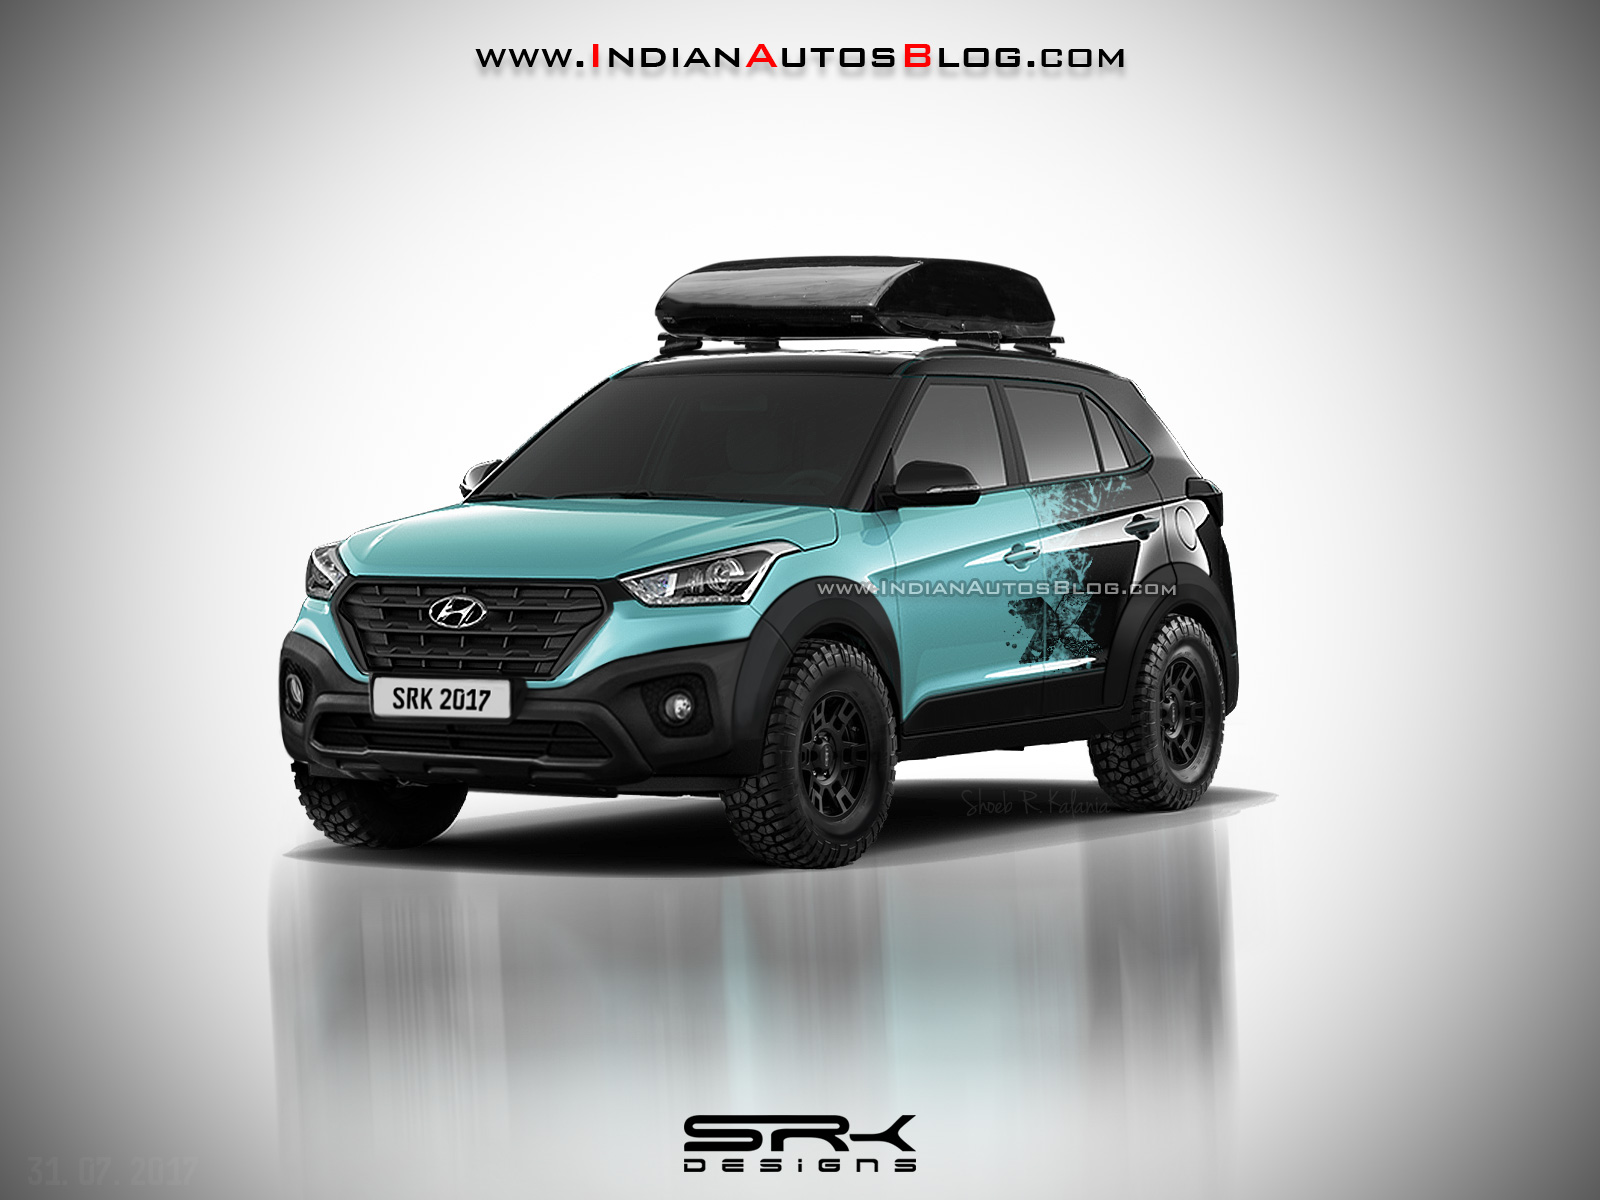 Hyundai Creta X front three quarters rendering